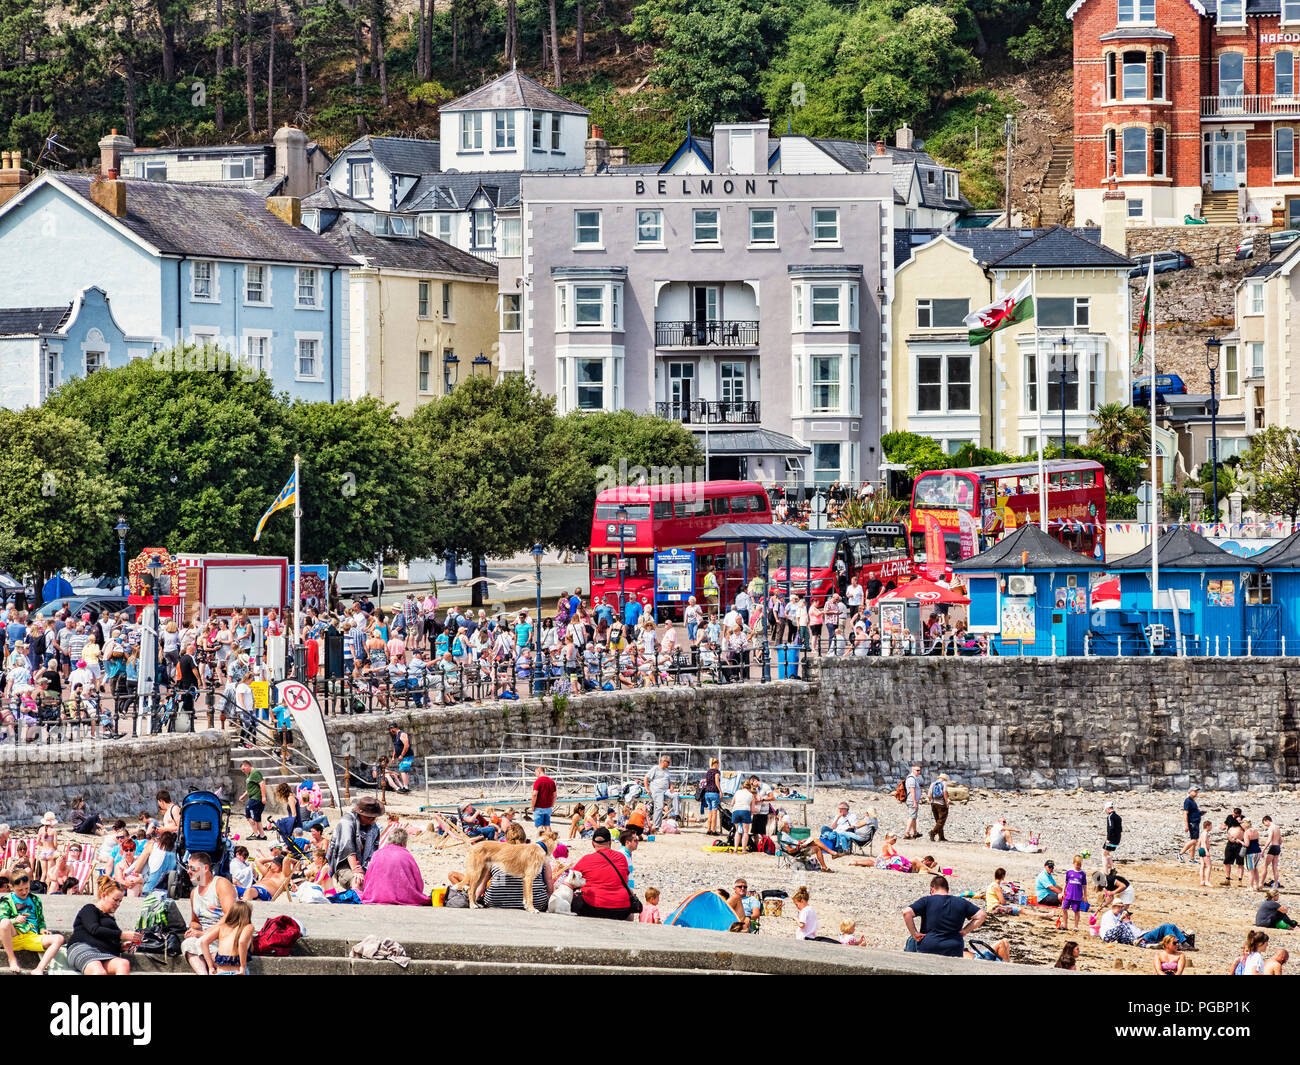 25 July 2018: Llandudno, Conwy, UK - The beach and promenade on a summer day during the July heatwave. - Stock Image